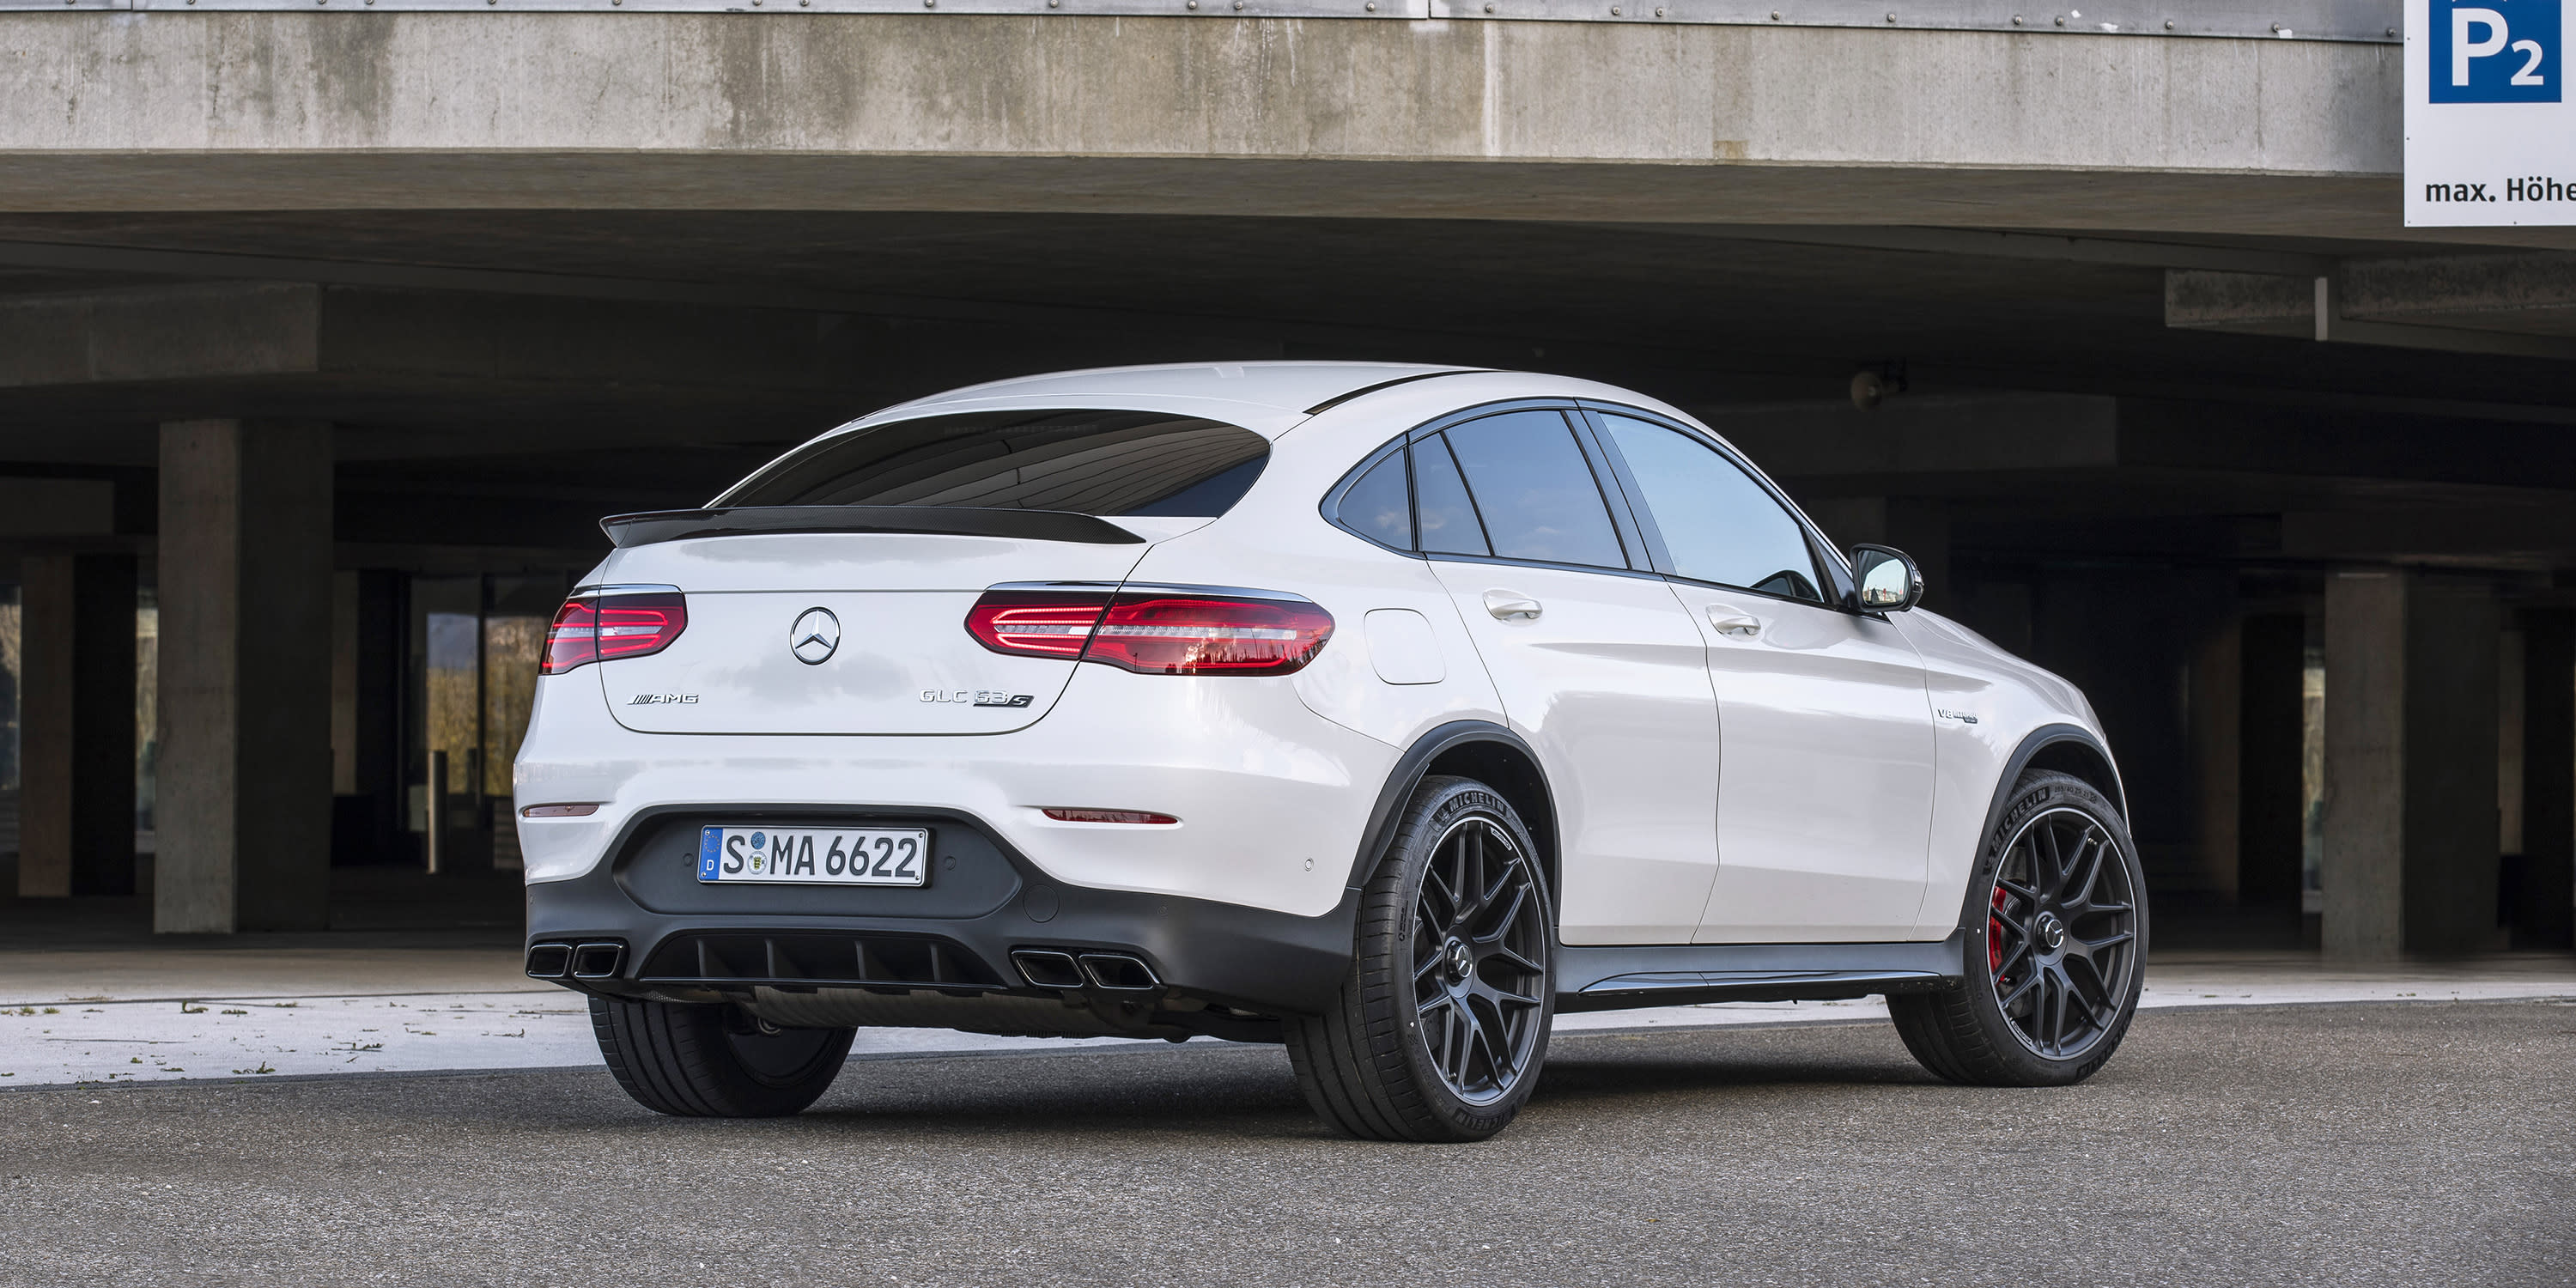 U Uu Glc >> Mercedes-AMG GLC63 S Coupe: The Wing Says It All